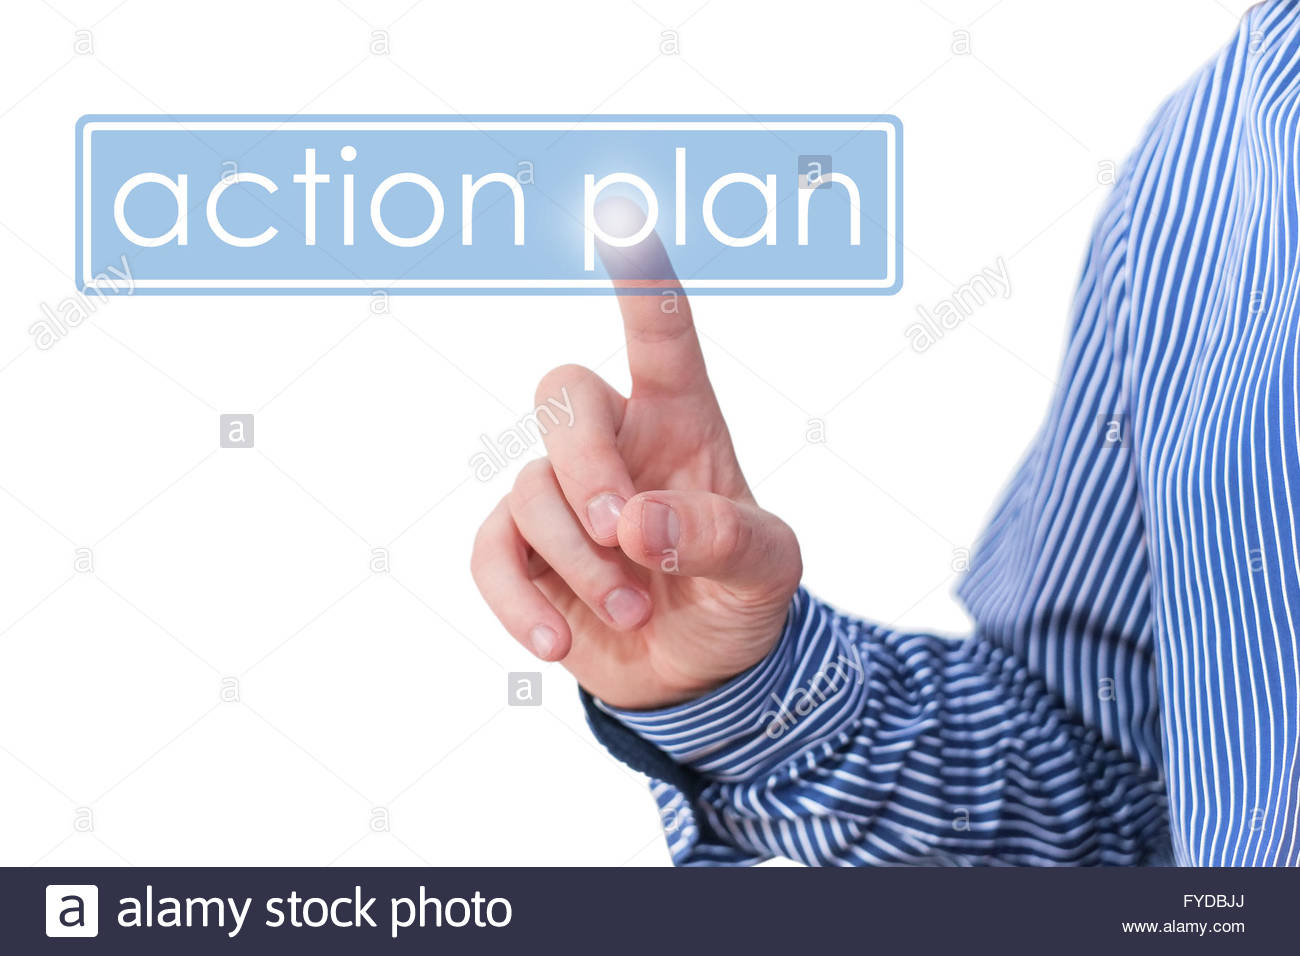 action plan - business concept - Stock Image